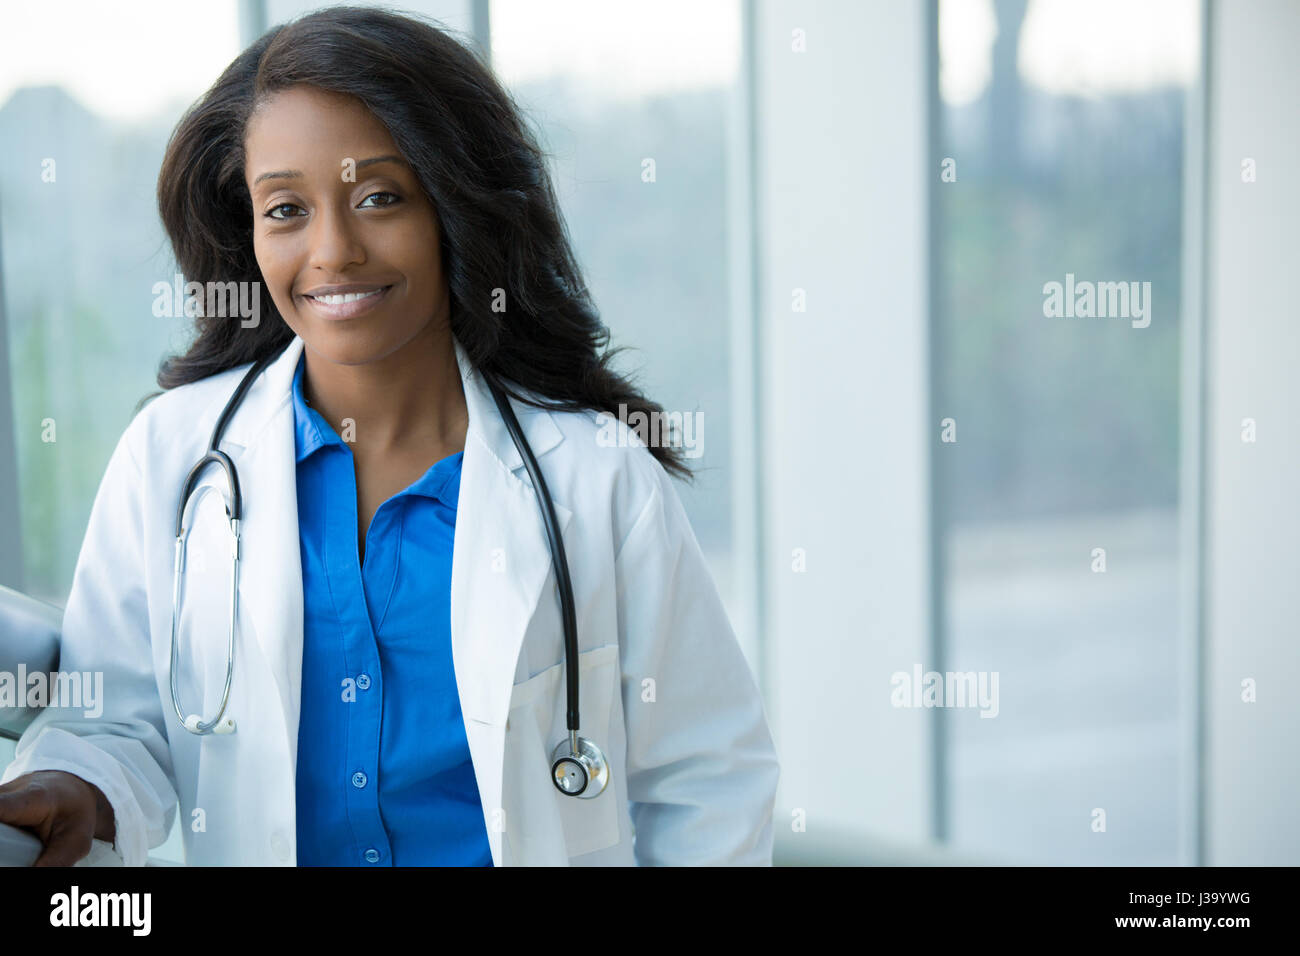 Closeup portrait of friendly, smiling confident female healthcare professional with lab coat, stethoscope, arms crossed. Isolated hospital clinic back Stock Photo